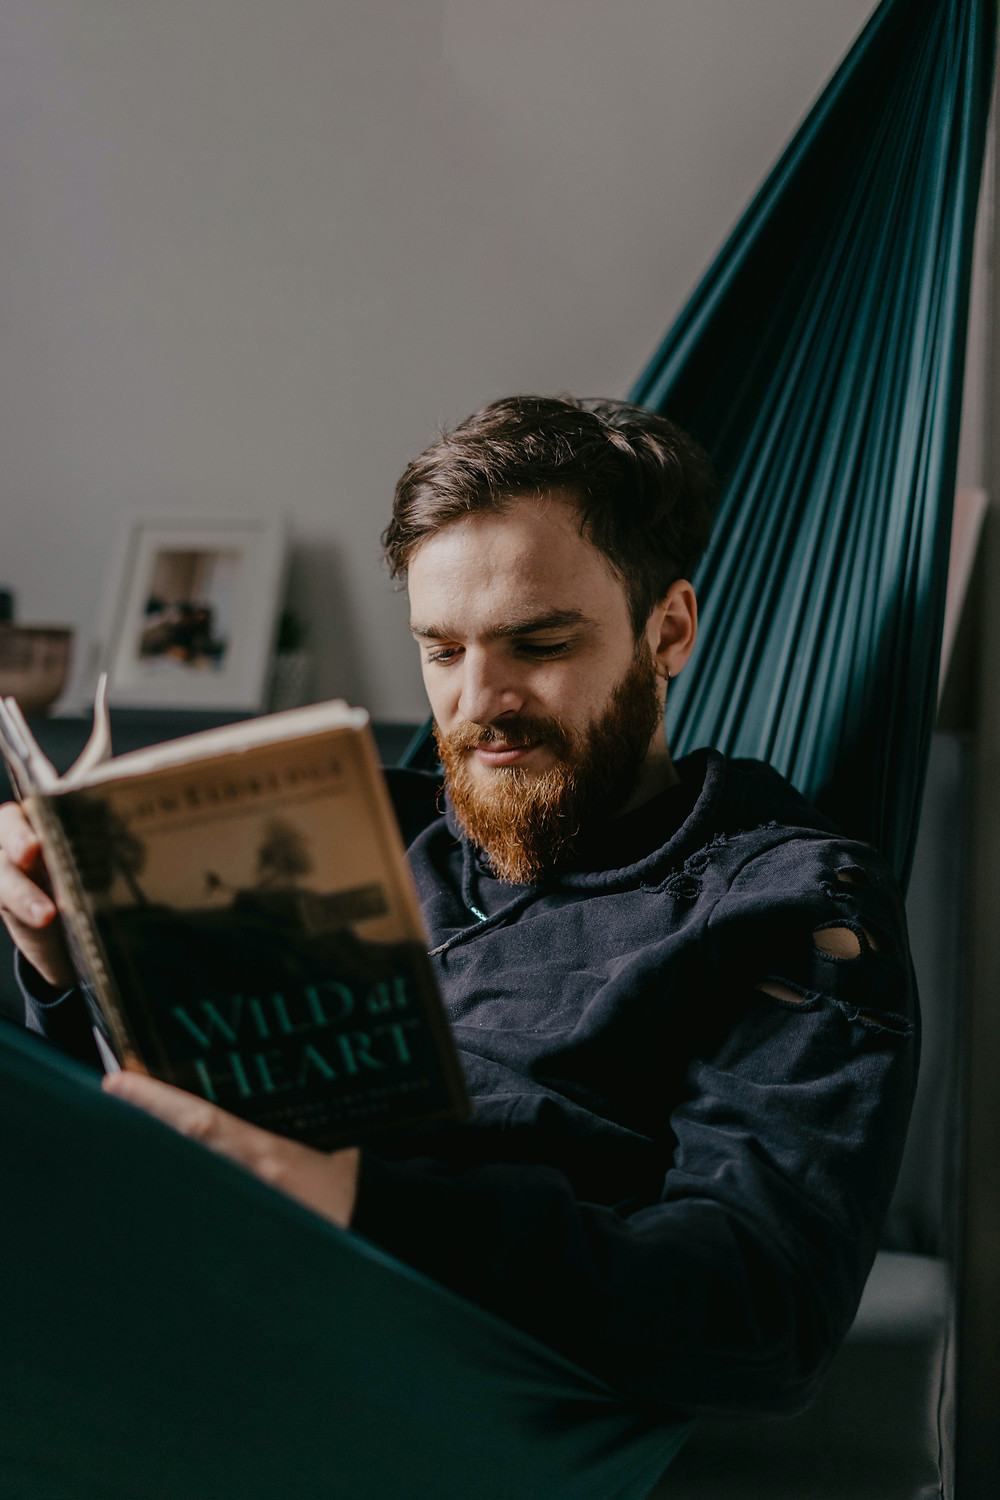 Man with beard reading book